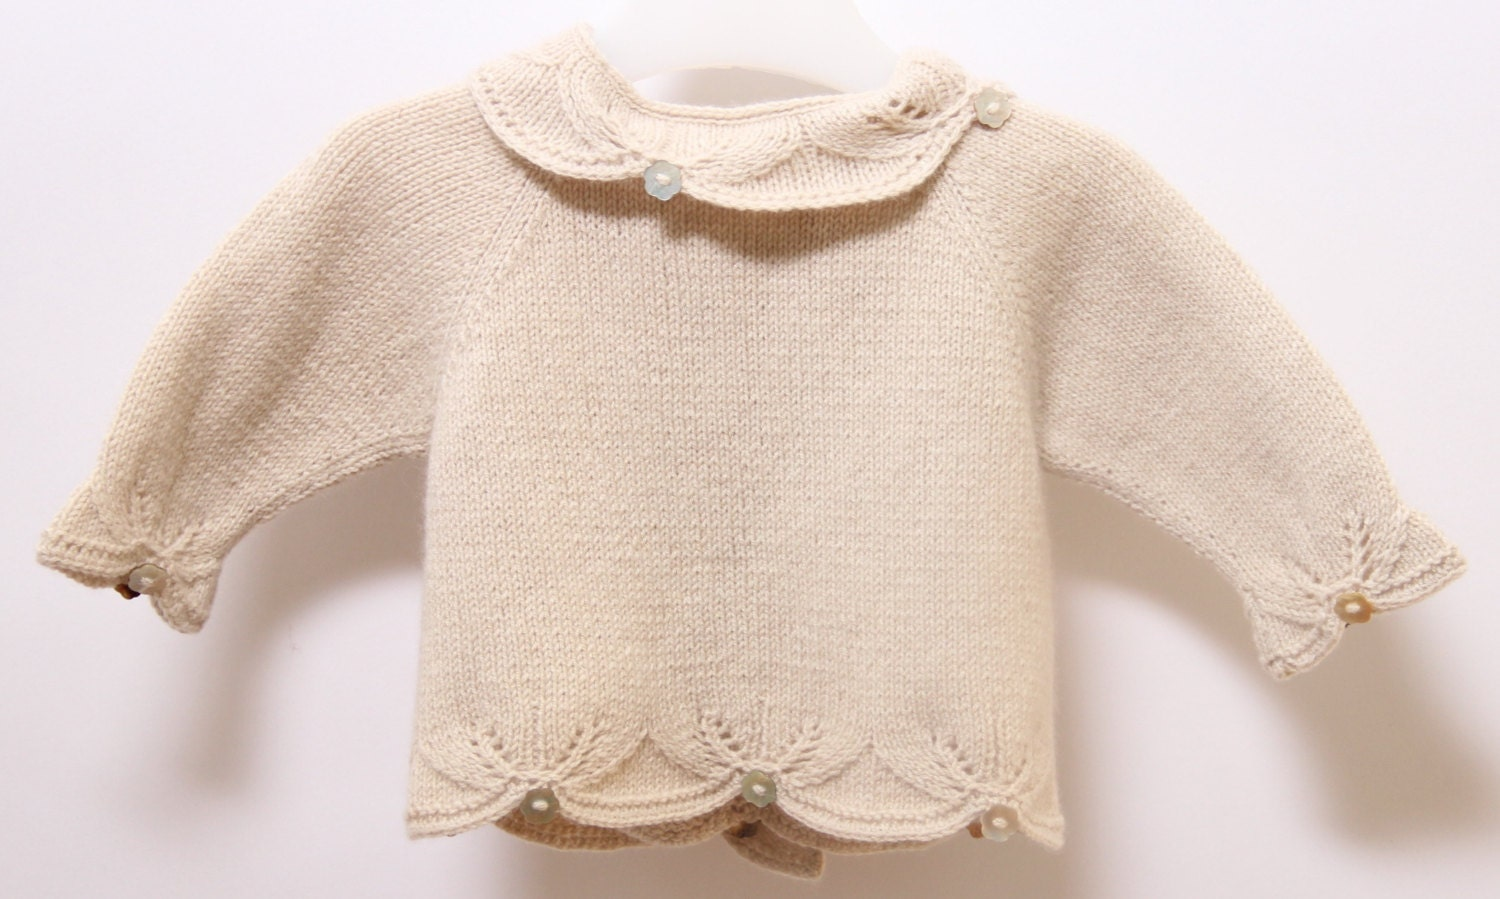 French Baby Knitting Patterns : Brassiere Explications tricot en Francais PDF Telechargement